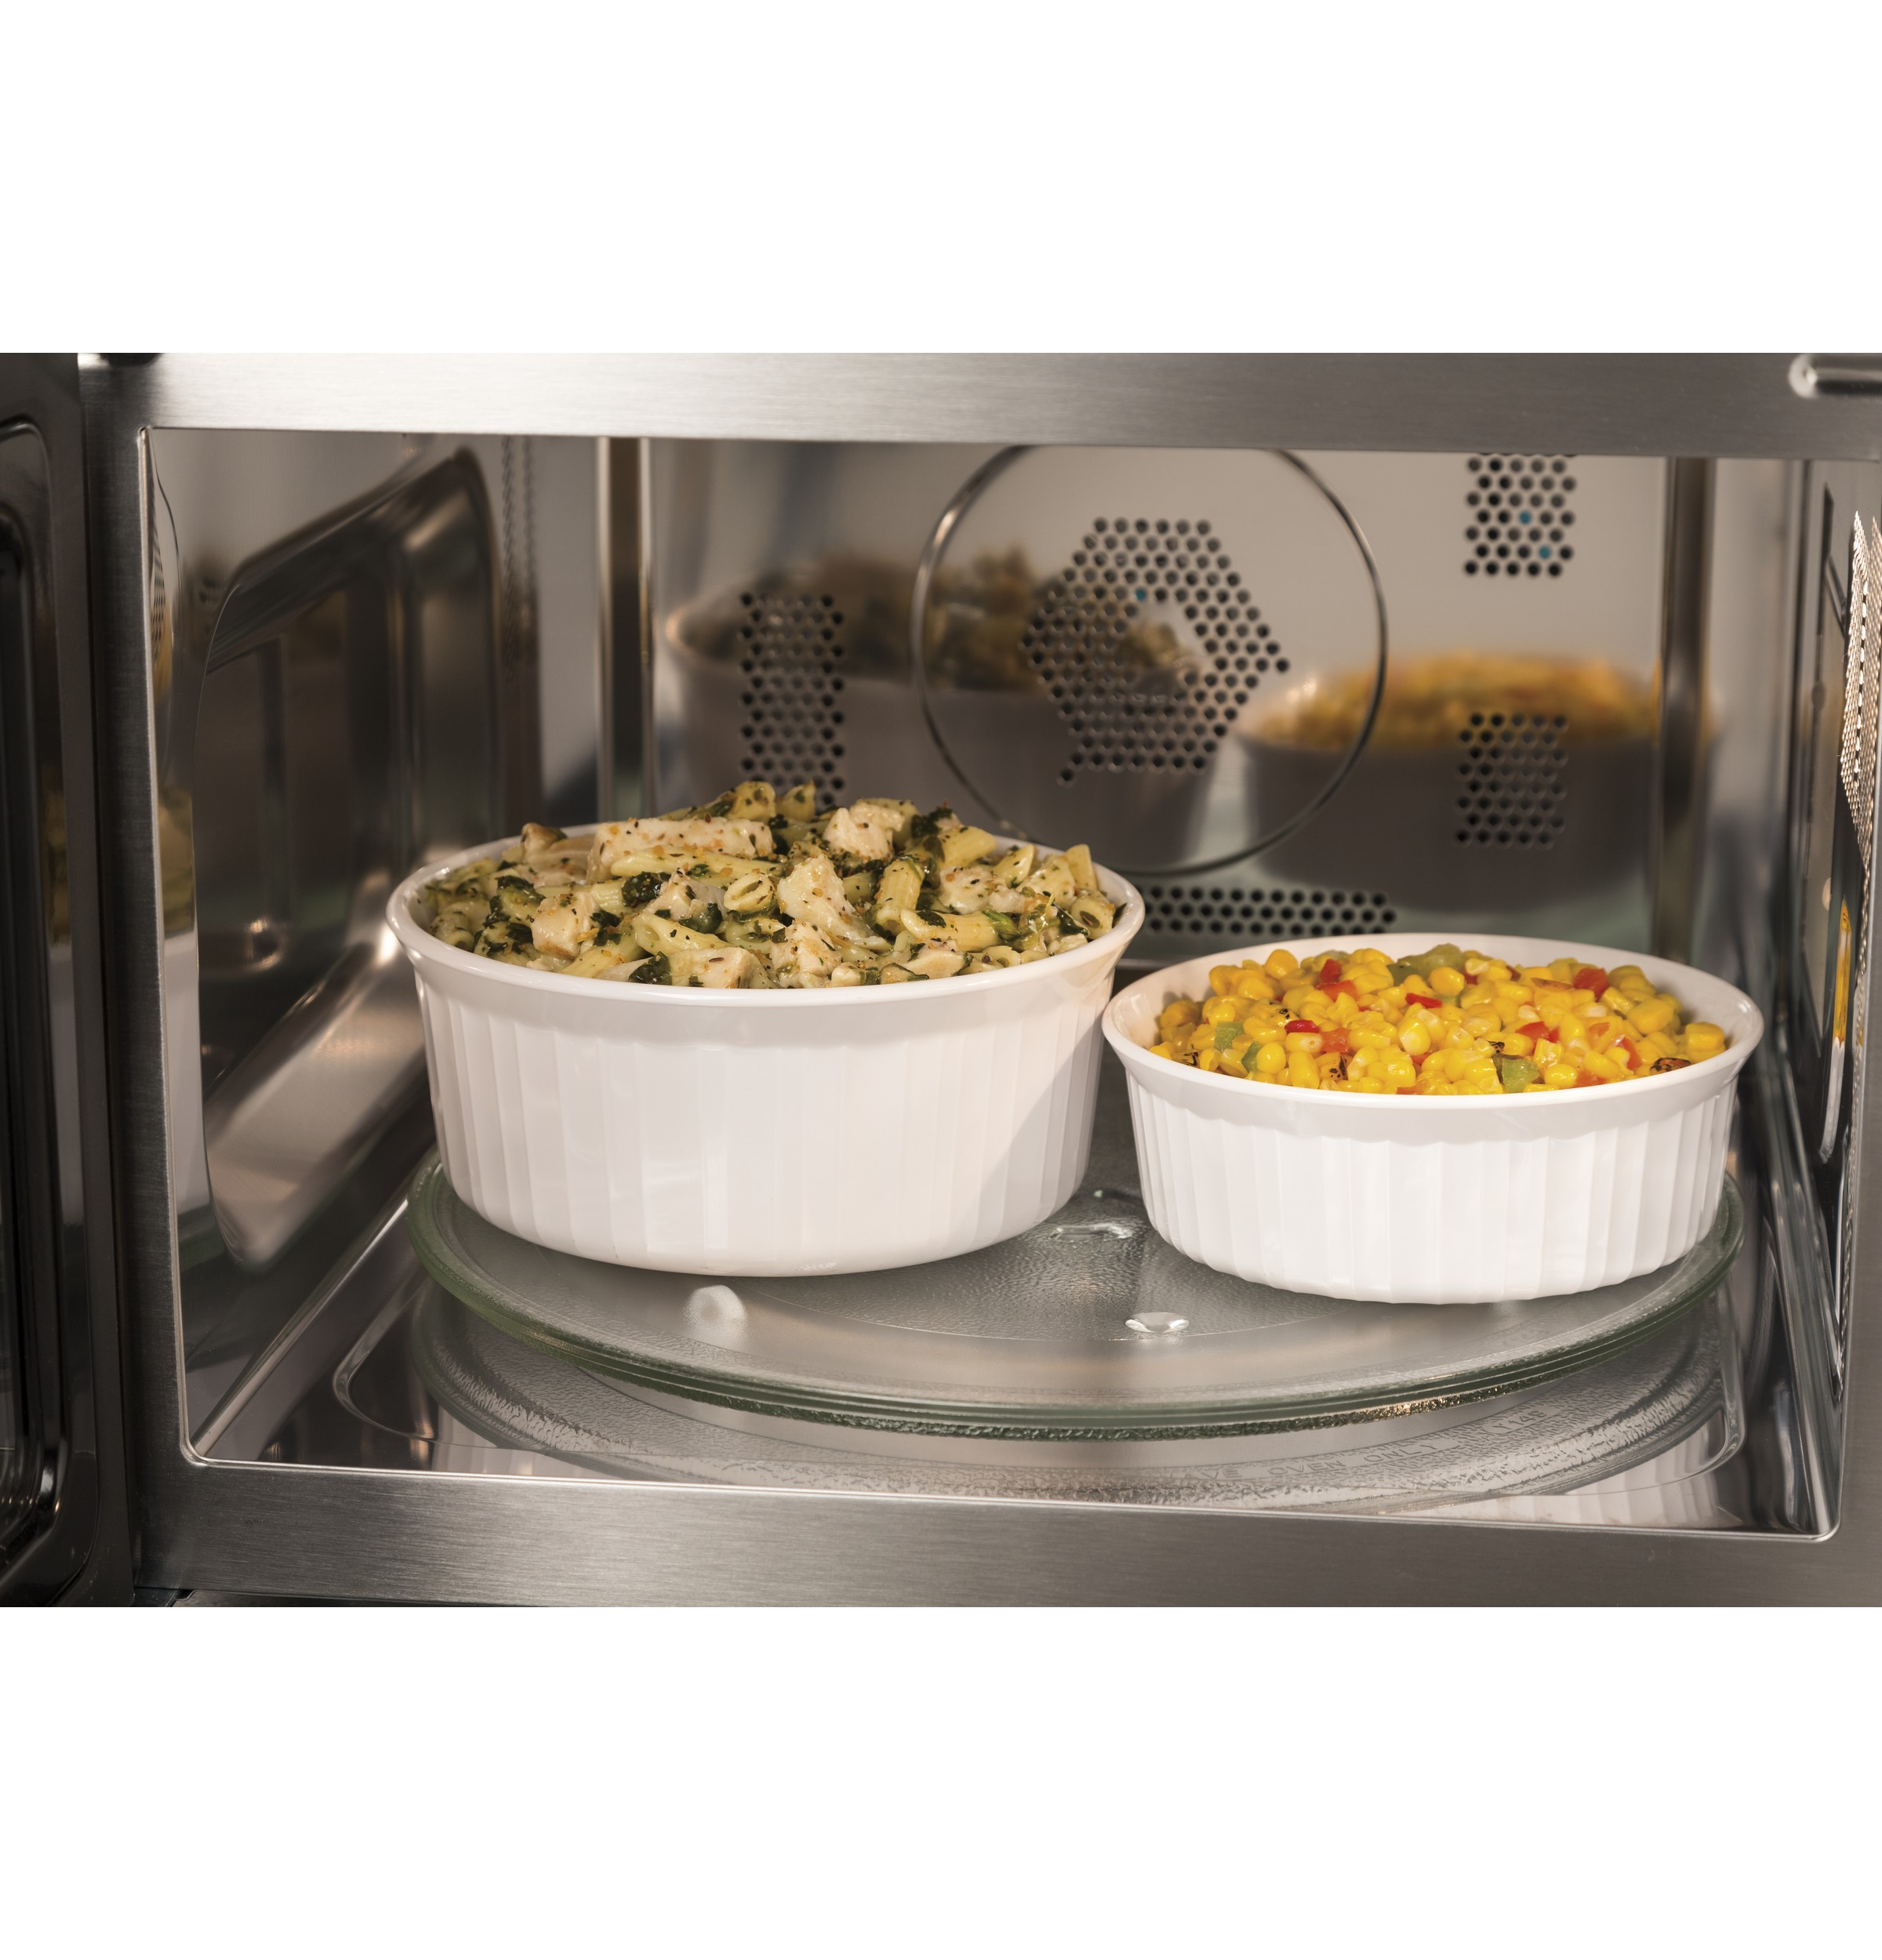 Model: PEB9159SJSS | GE Profile GE Profile™ Series 1.5 Cu. Ft. Countertop Convection/Microwave Oven